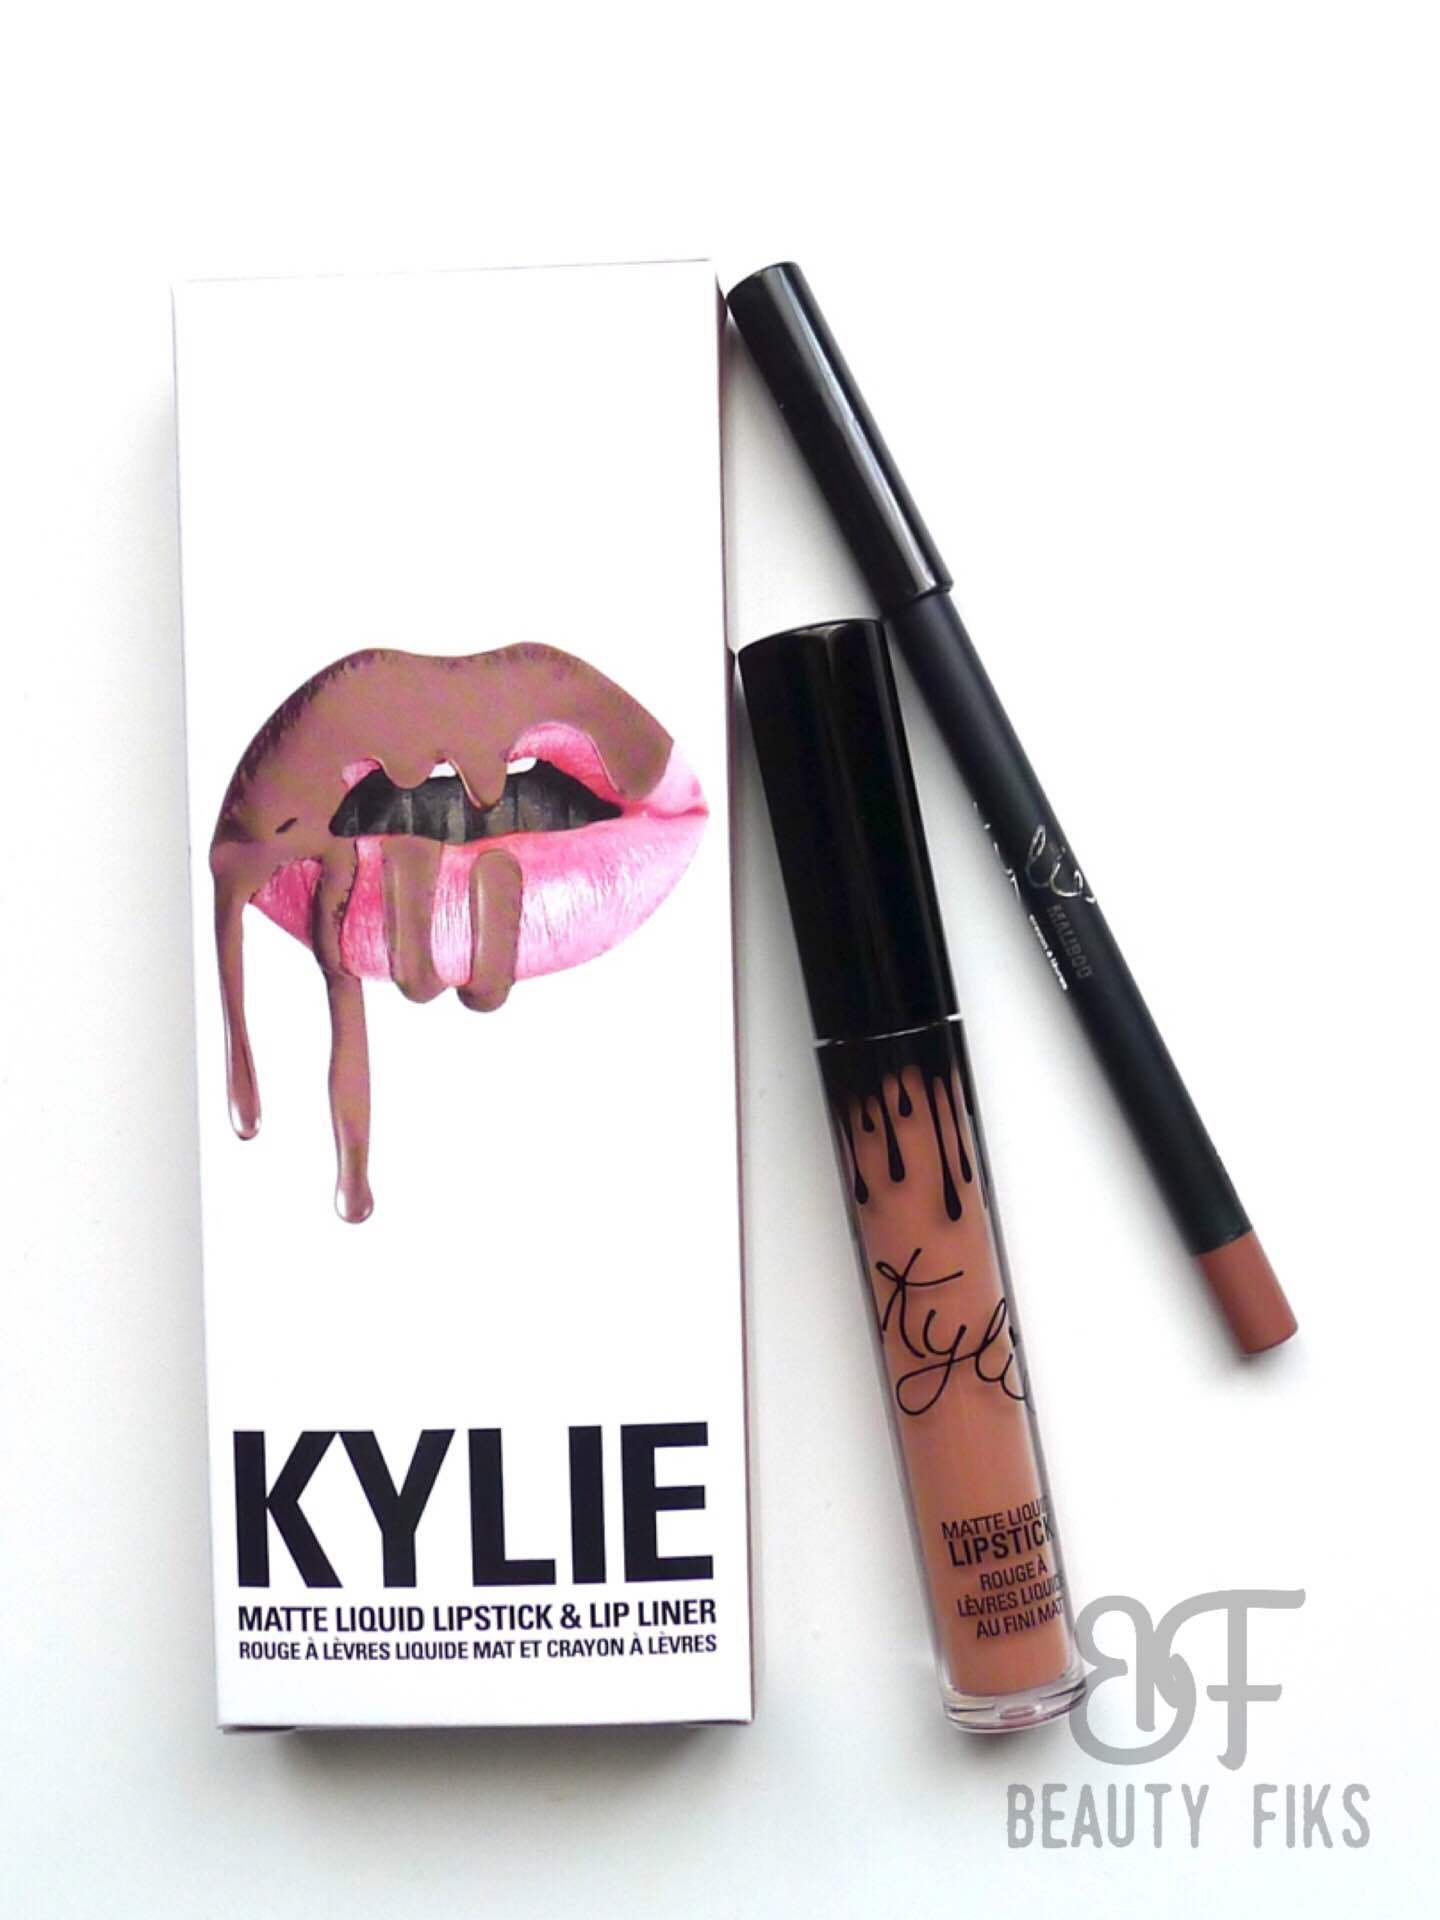 Kylie Cosmetics Heir A Metals Review: Kylie Cosmetics #KylieLipKit By Kylie Jenner